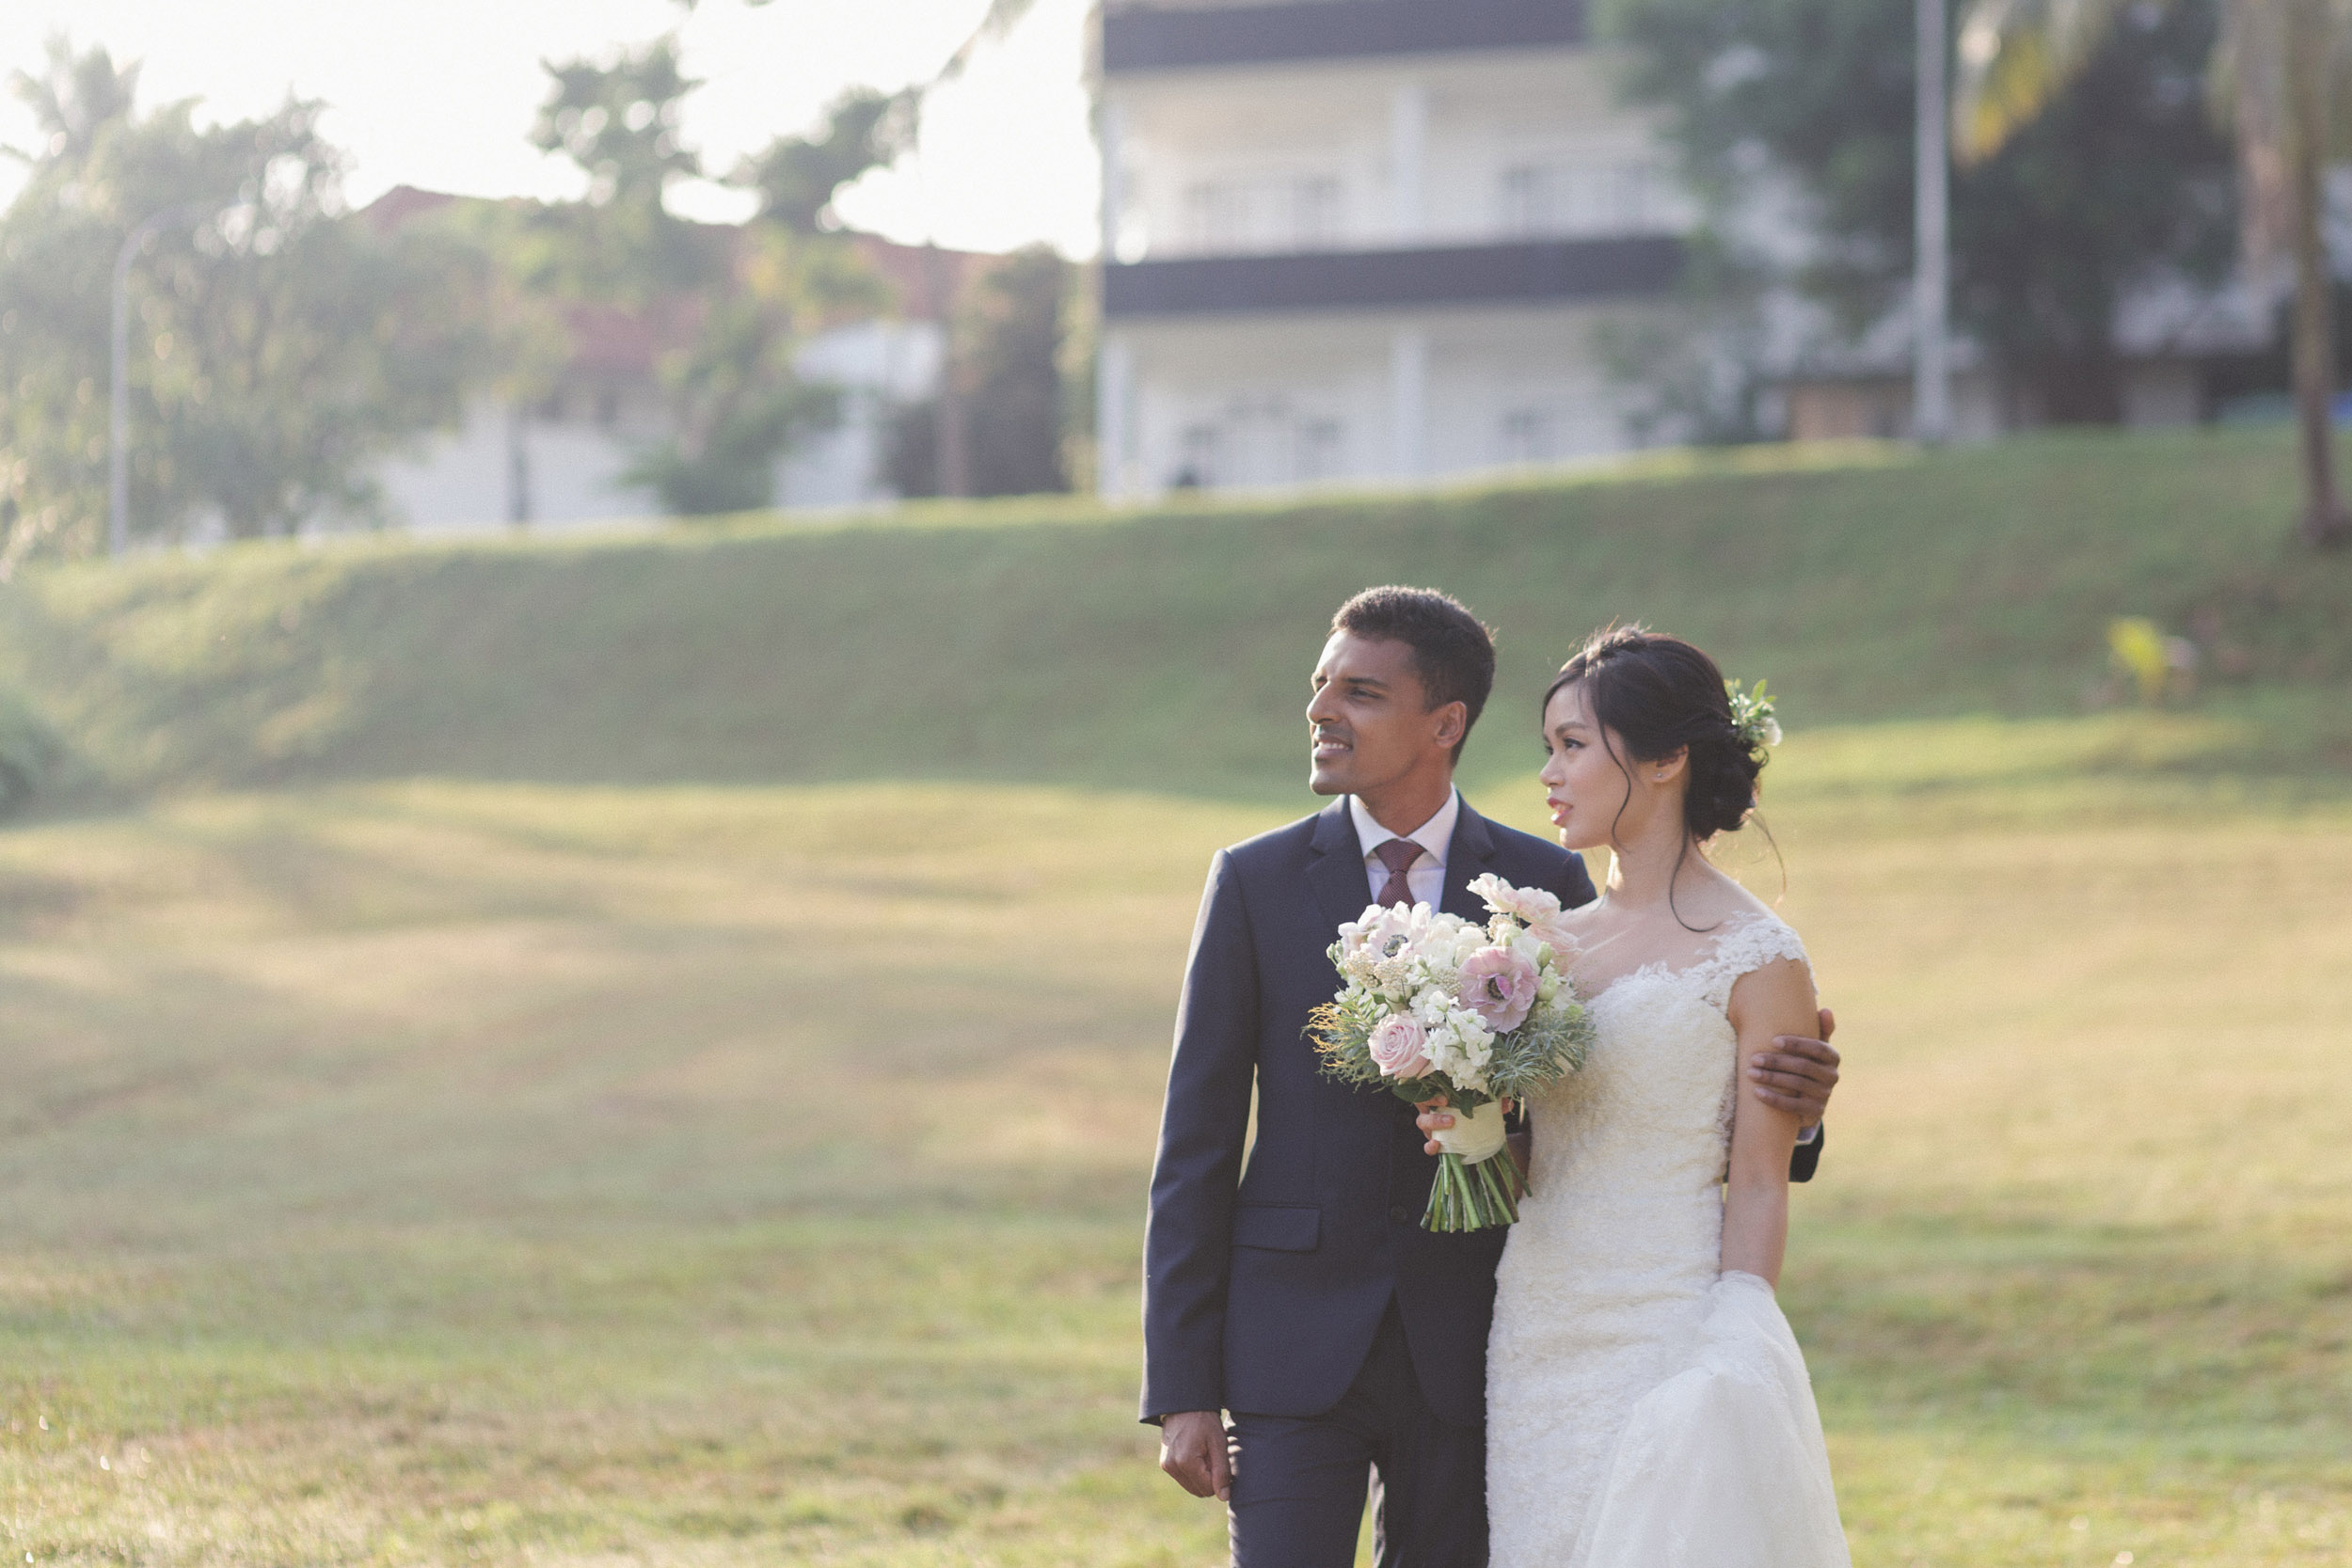 singapore-wedding-photographer-wemadethese-suriya-xinqi-03.jpg